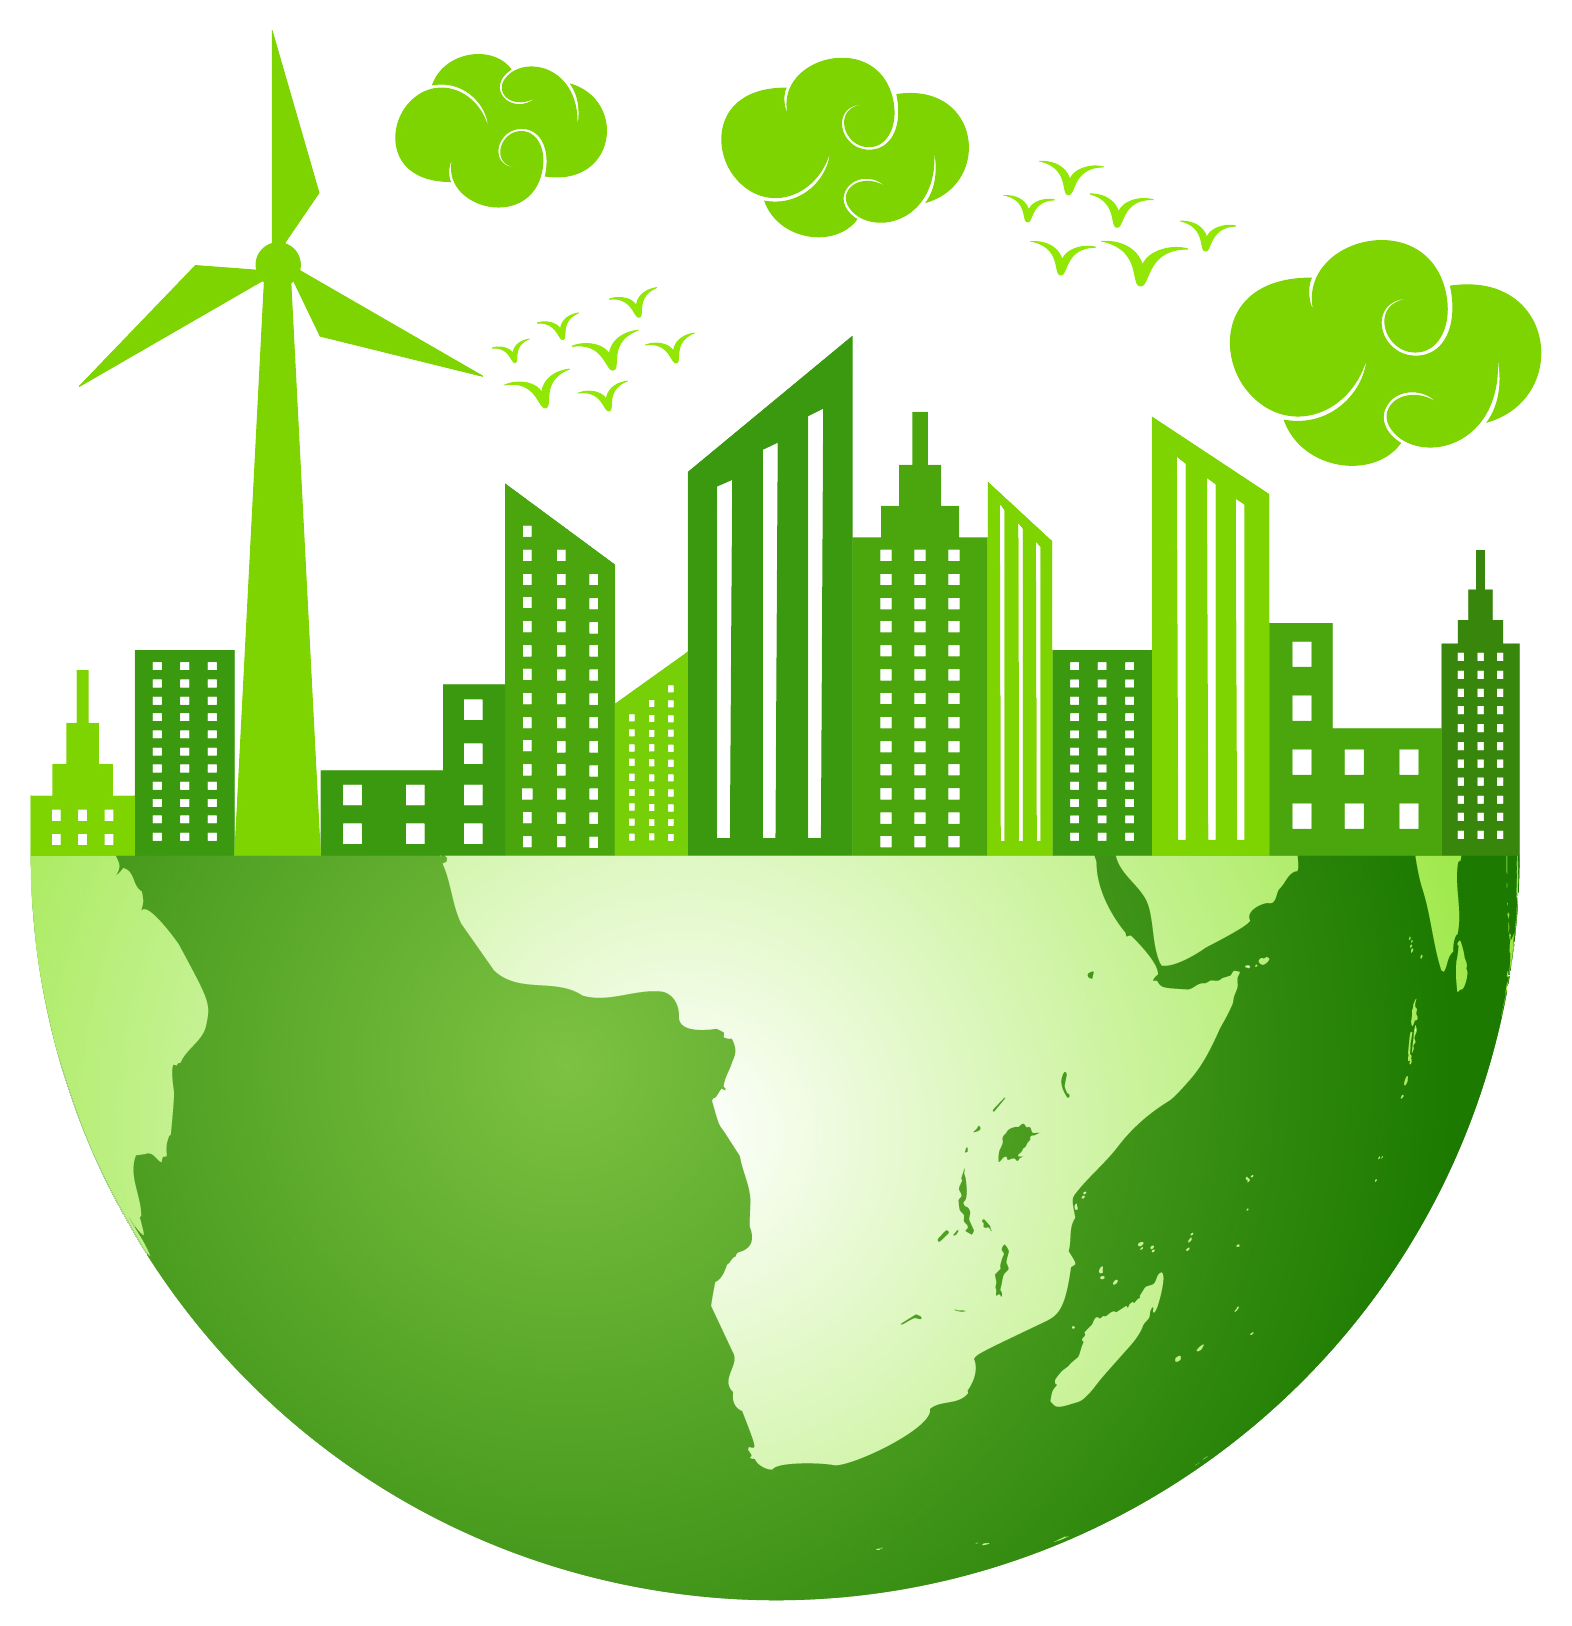 greenery and sustainability urban planning environmental sciences essay Landscape and urban planning is an international journal and environmental urban ecology and sustainability: the state-of-the-science and future.